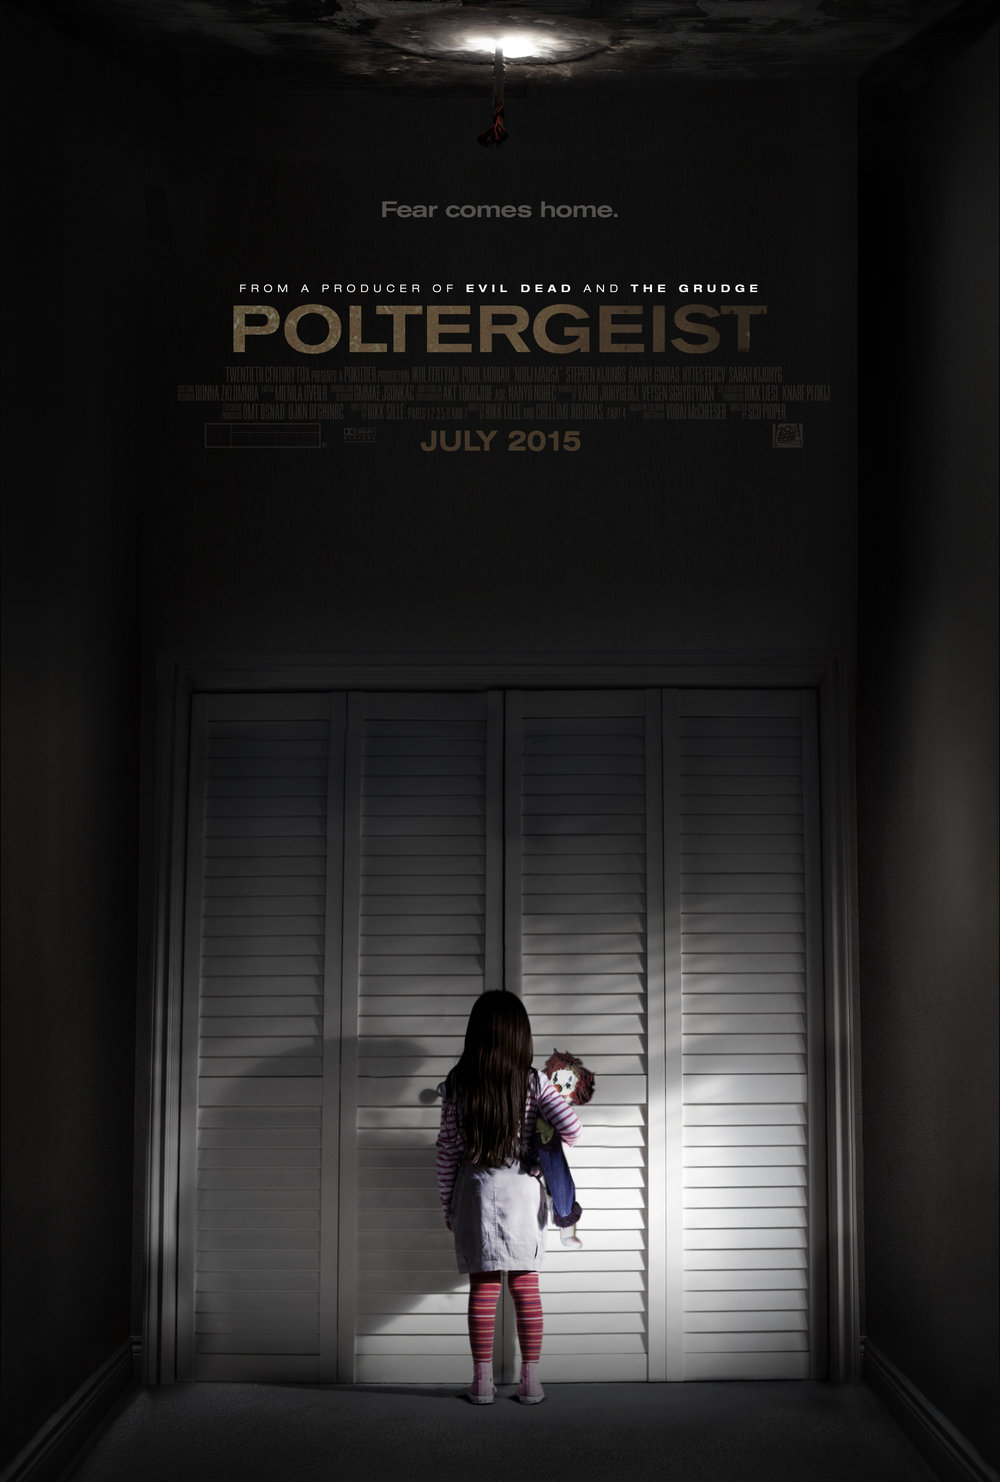 Poltergeist - 20th Century Fox